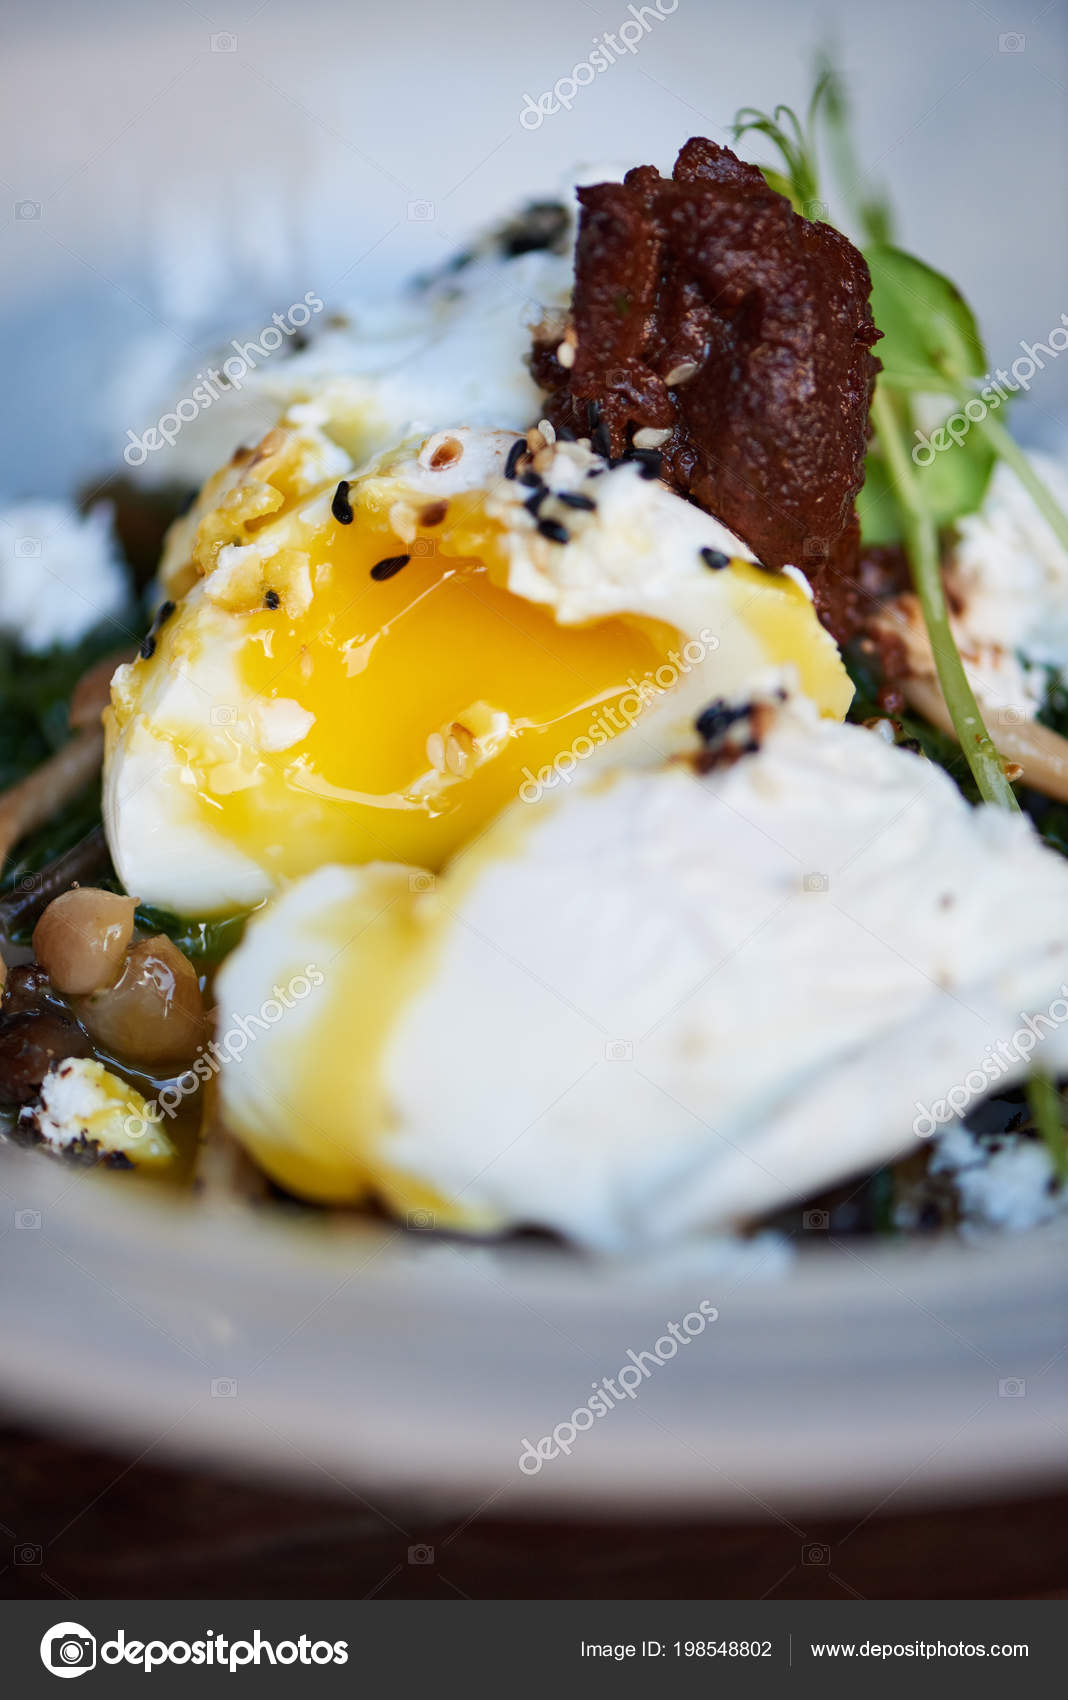 Runny yolk Stock Photos, Royalty Free Runny yolk Images | Depositphotos®